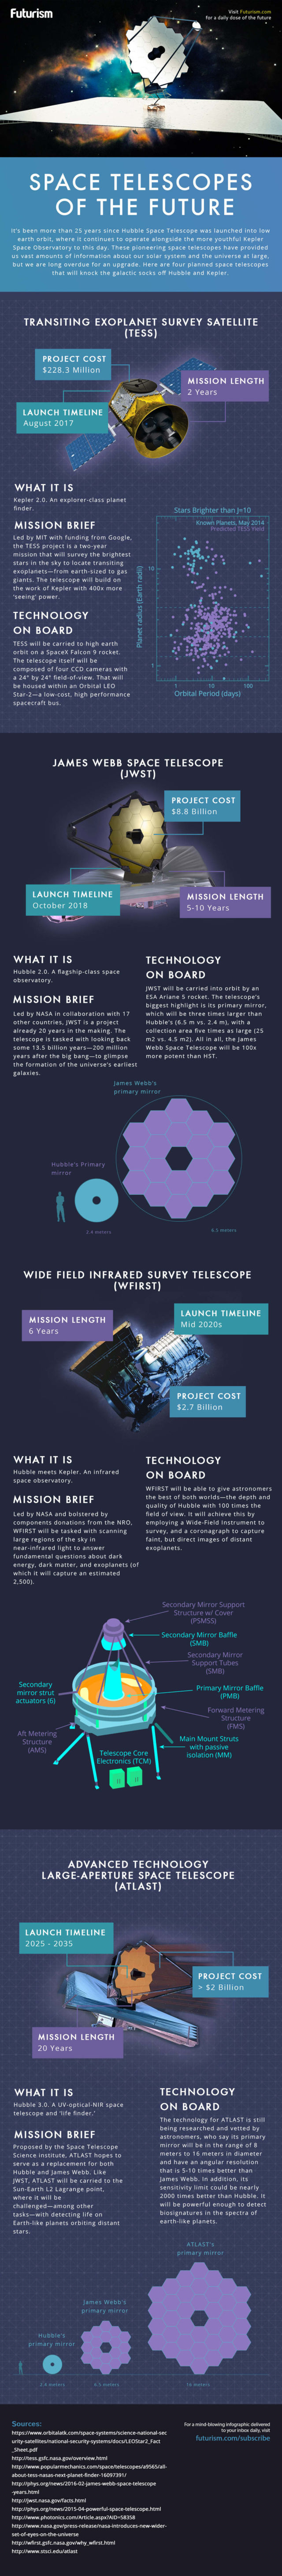 The Space Telescopes of the future - infographic